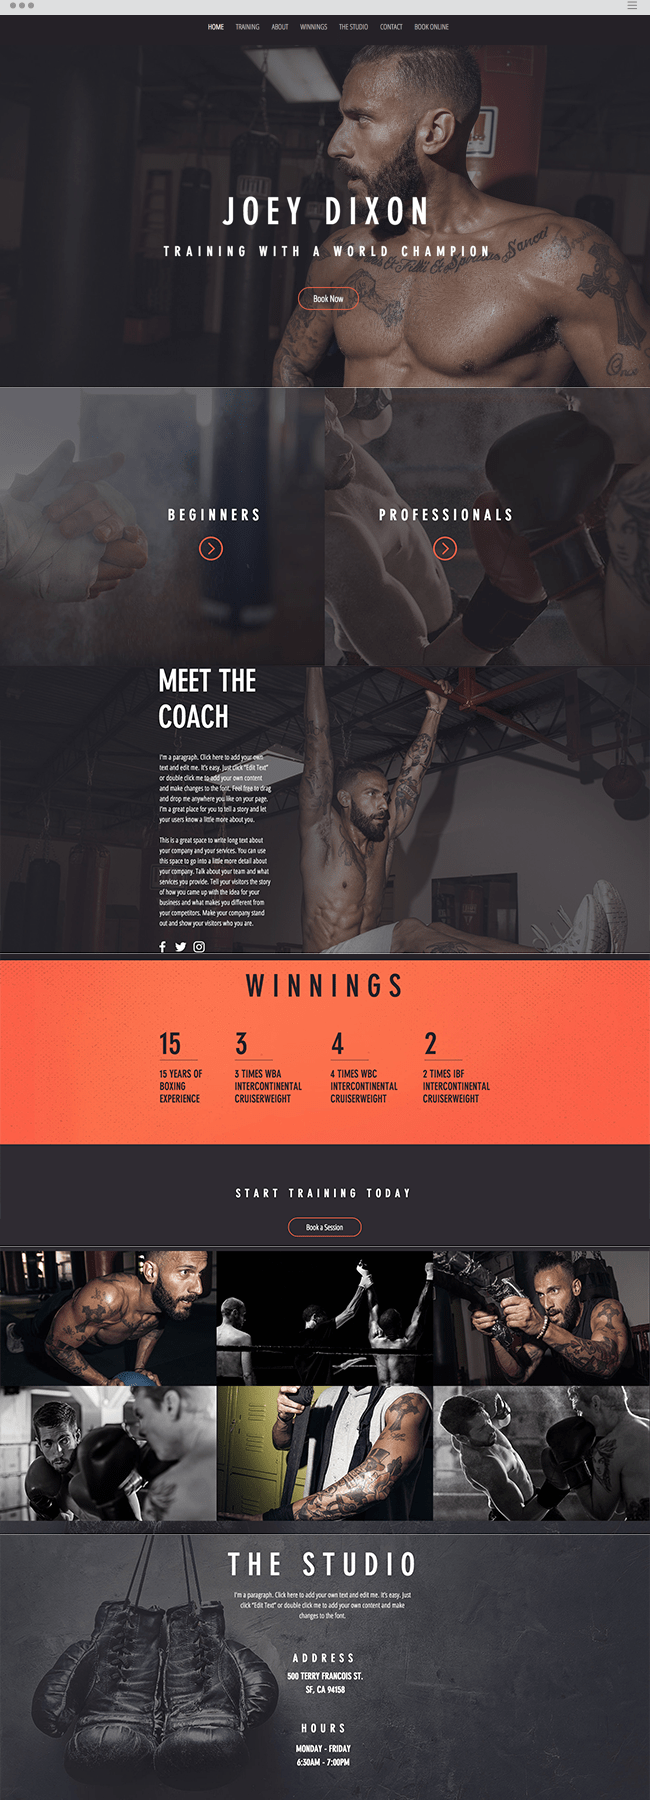 12 Stunning Website Templates You Can't Miss in 2016